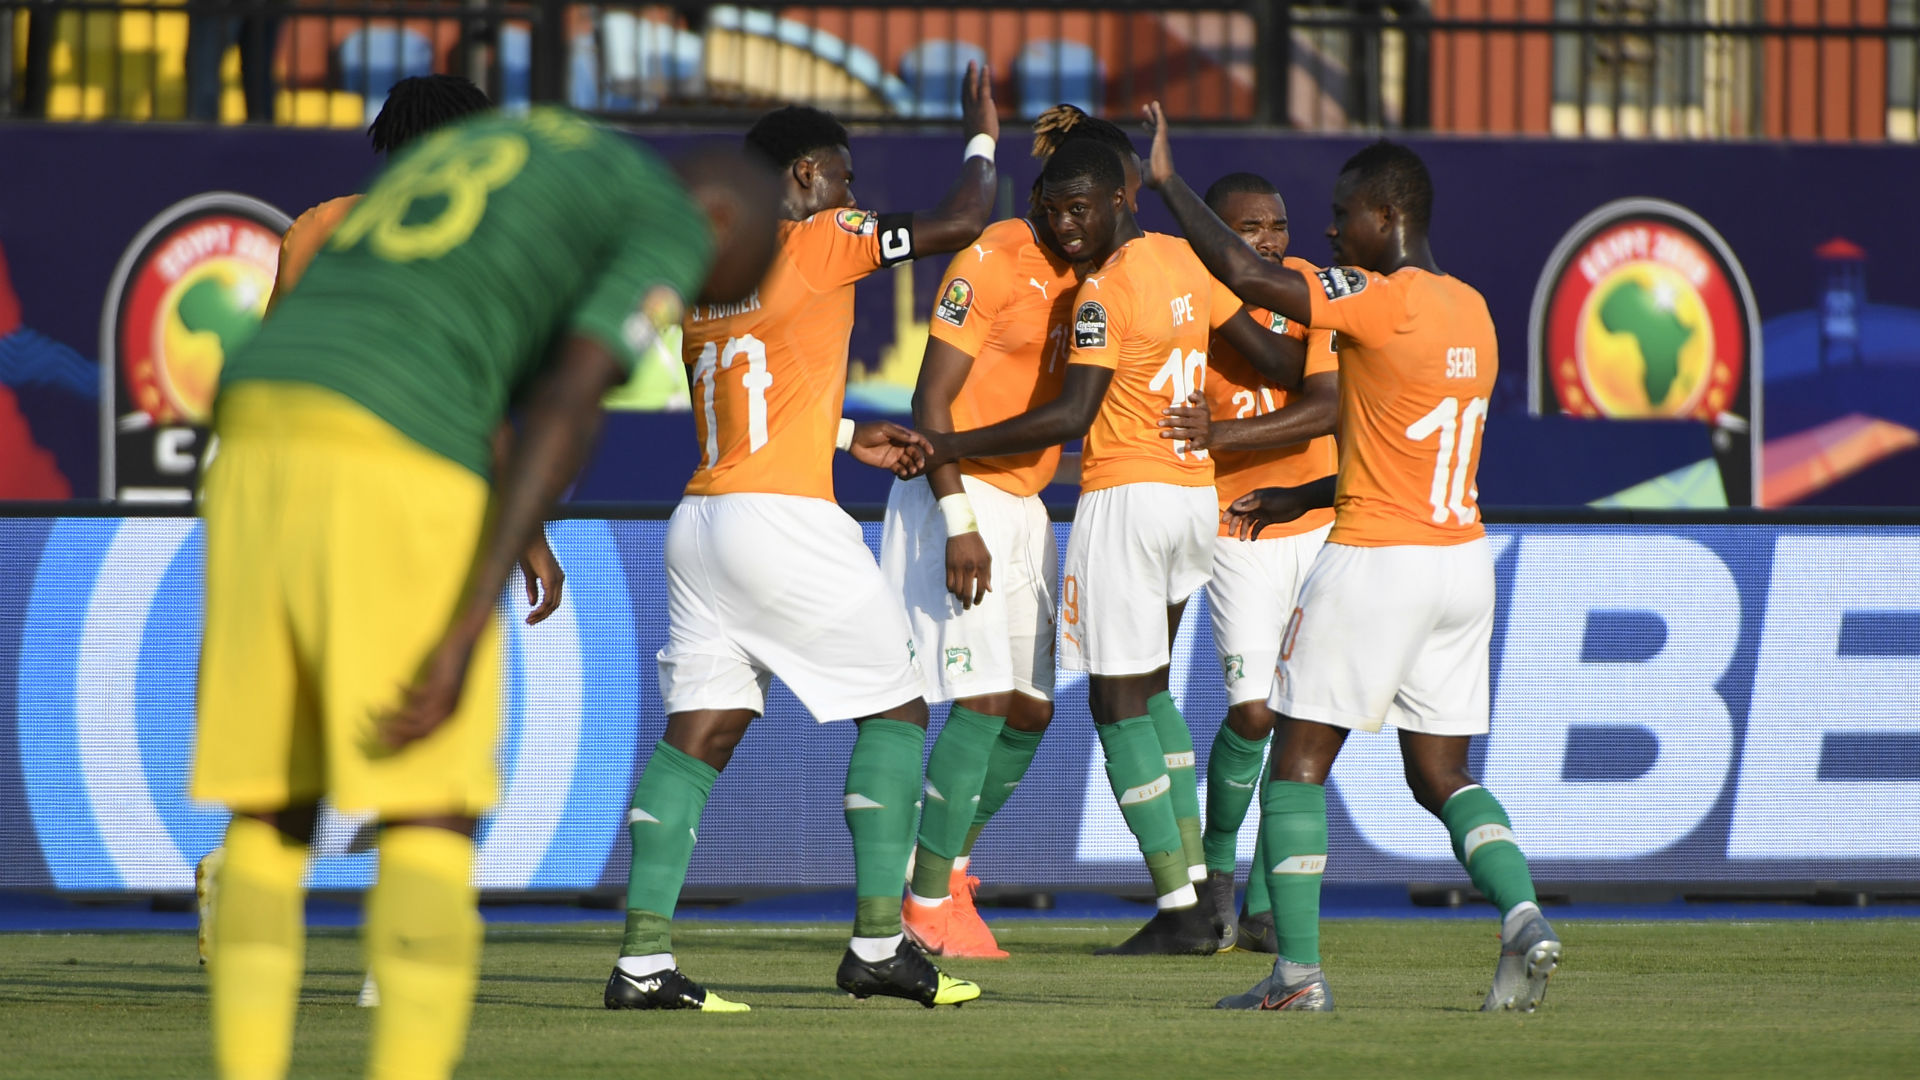 Ivory Coast confirms friendlies with Belgium and Japan after snubbing Nigeria